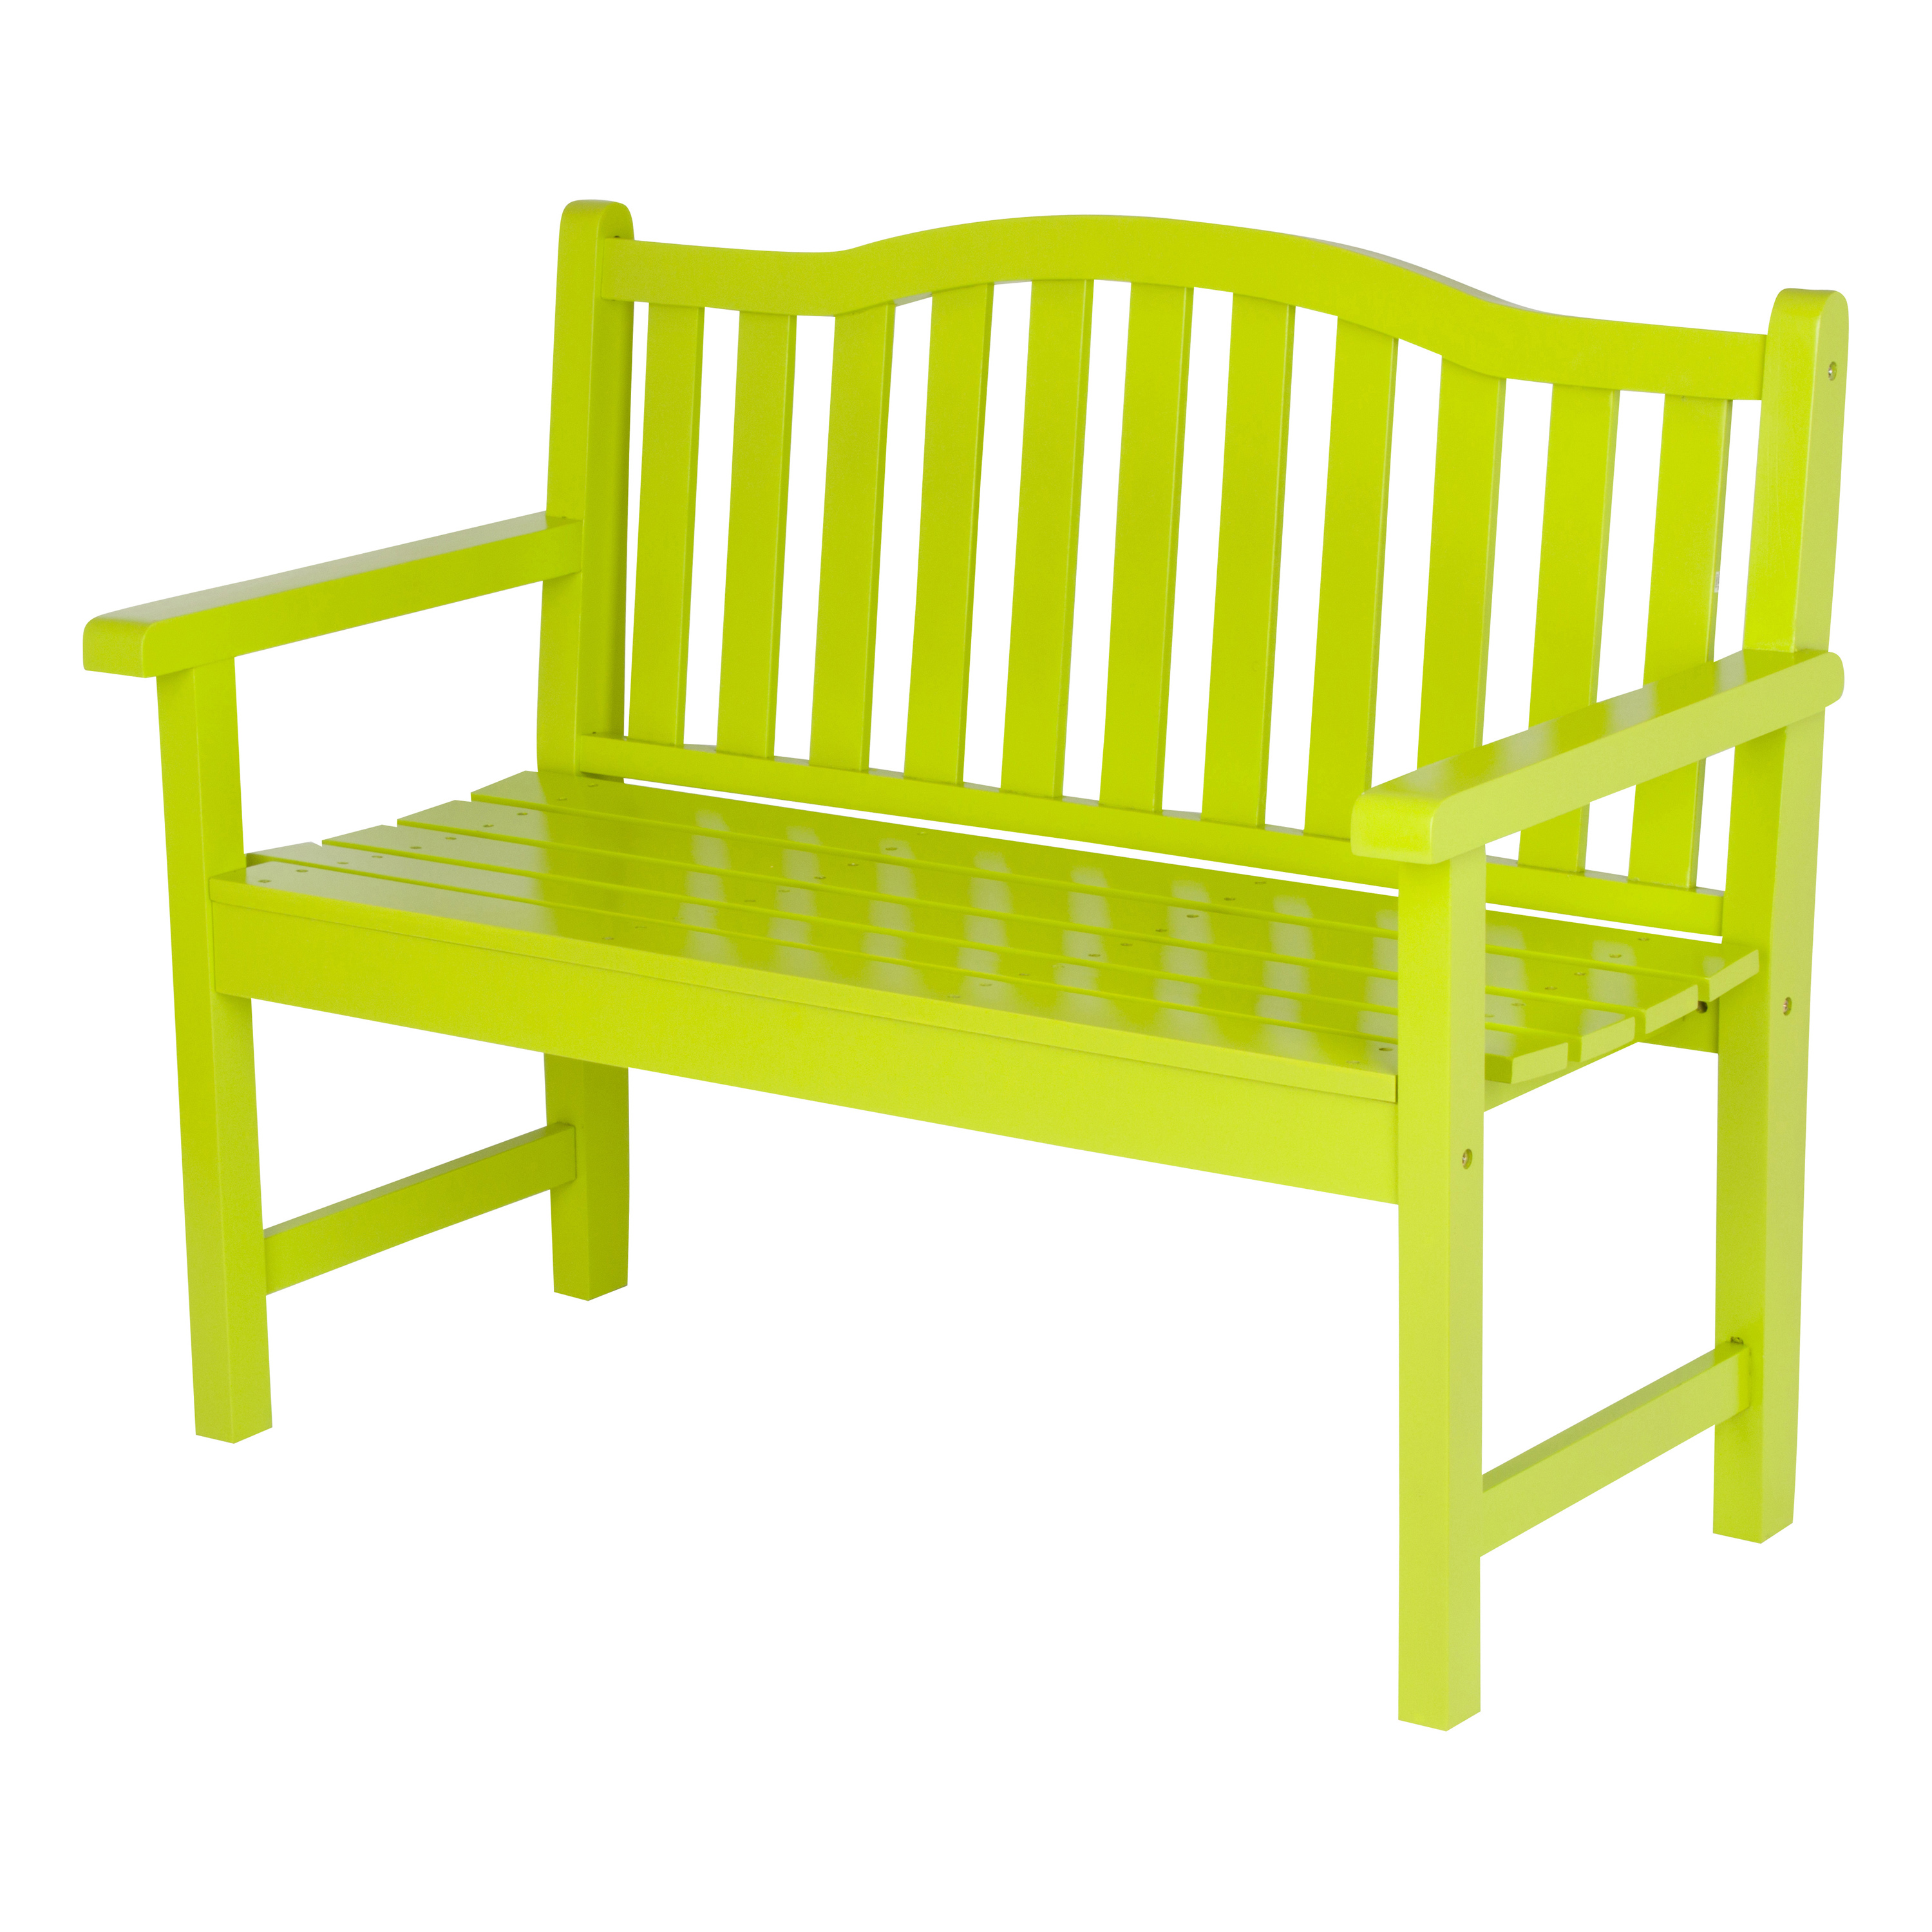 Shine Company Belfort Garden Bench - Lime Green